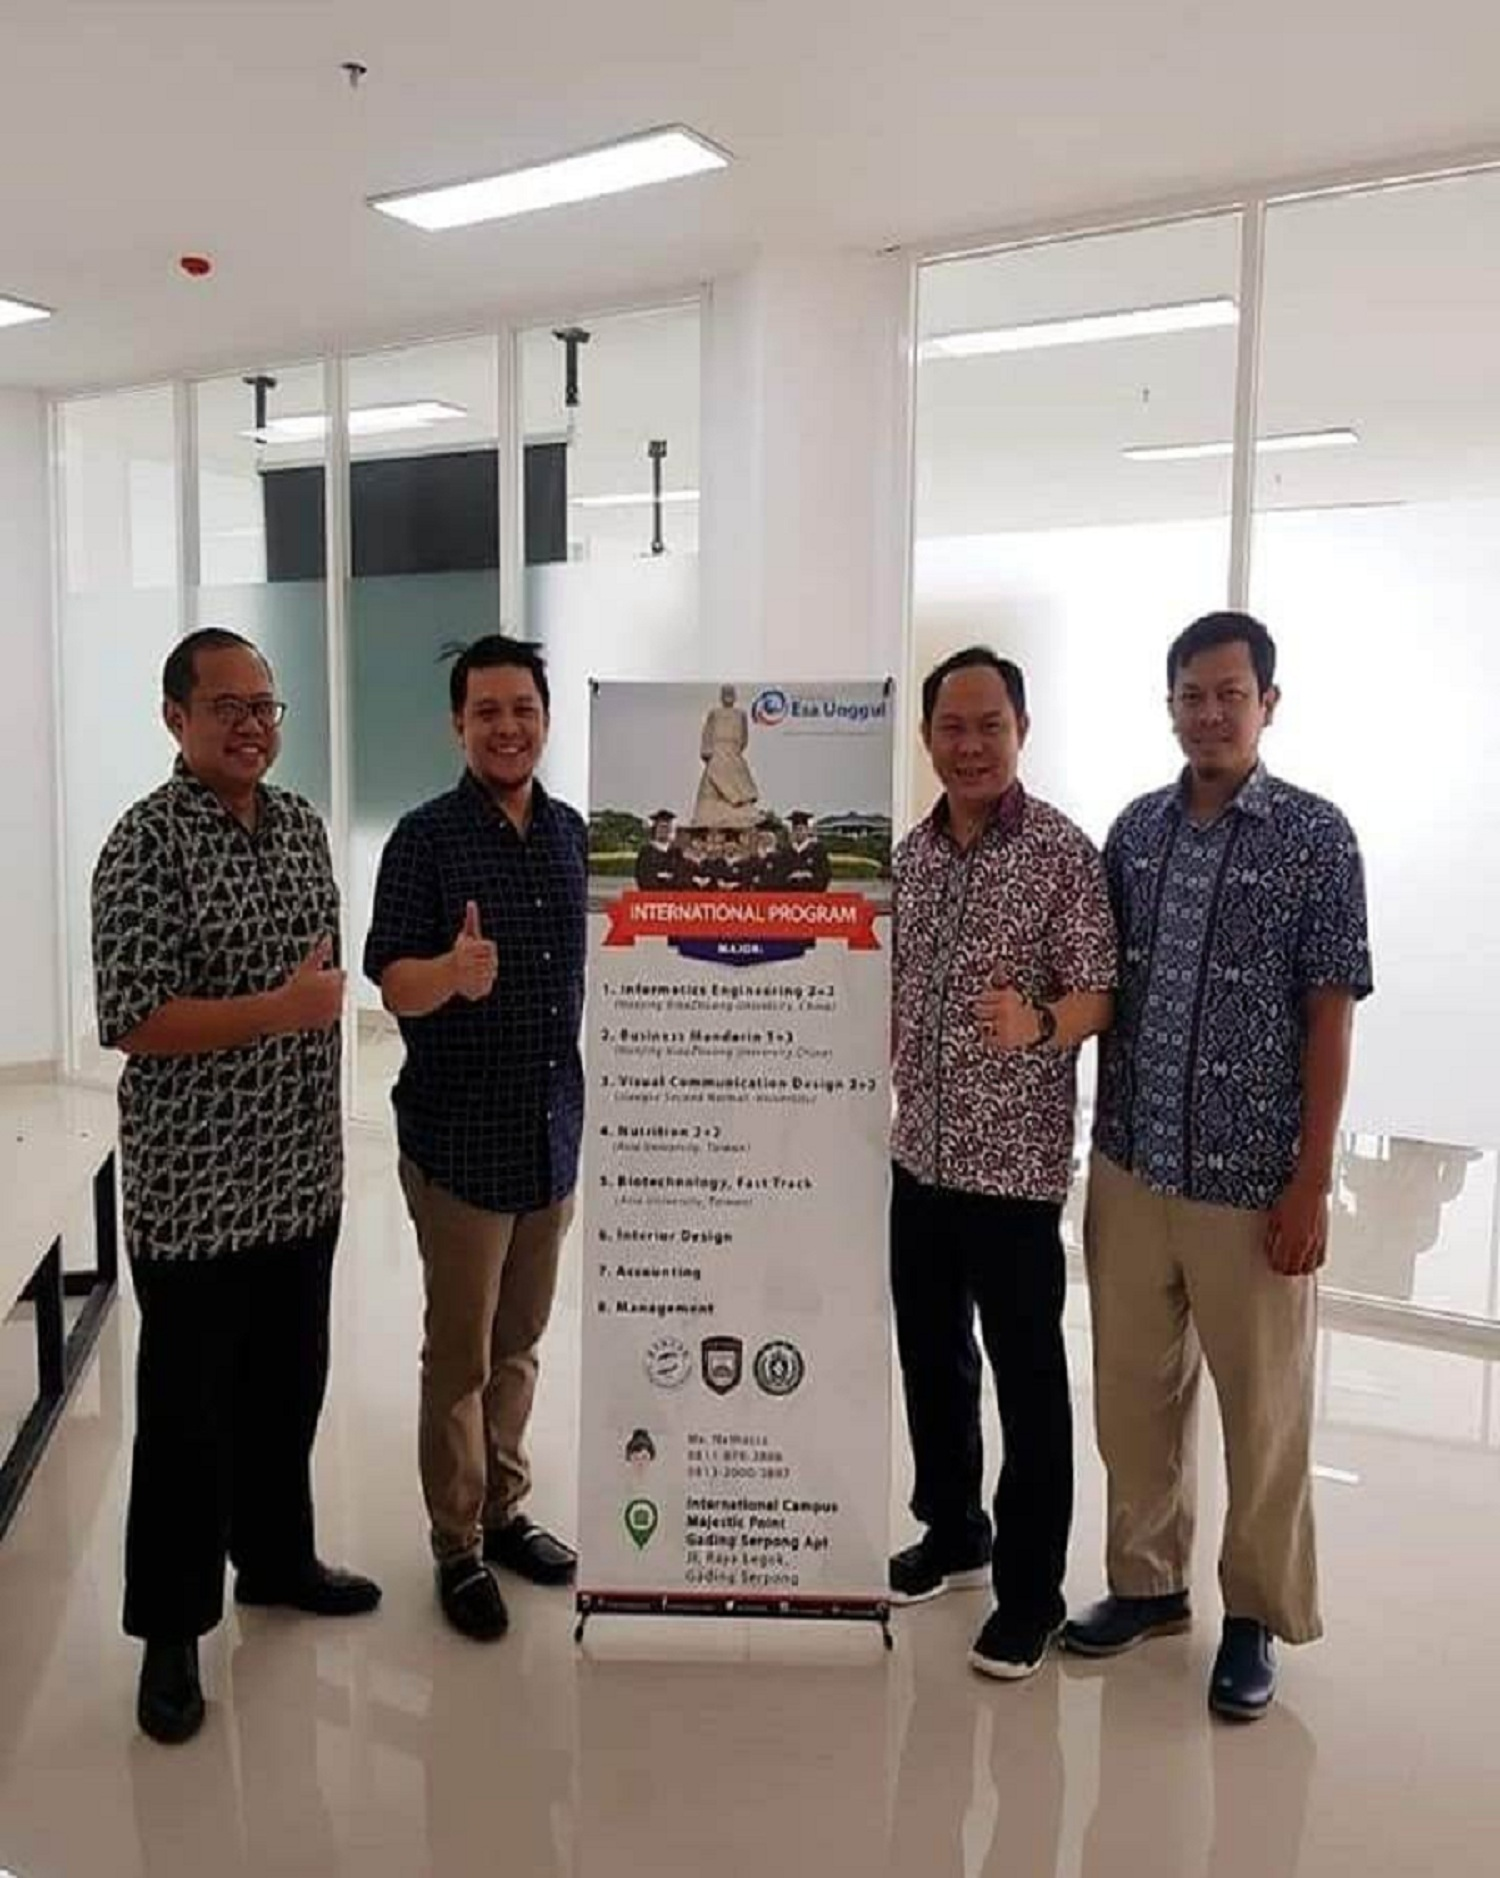 Dr. Fransiskus Adikara, Director of Esa Unggul University Gading Serpong International Campus (Second from the right) taking a photo together.